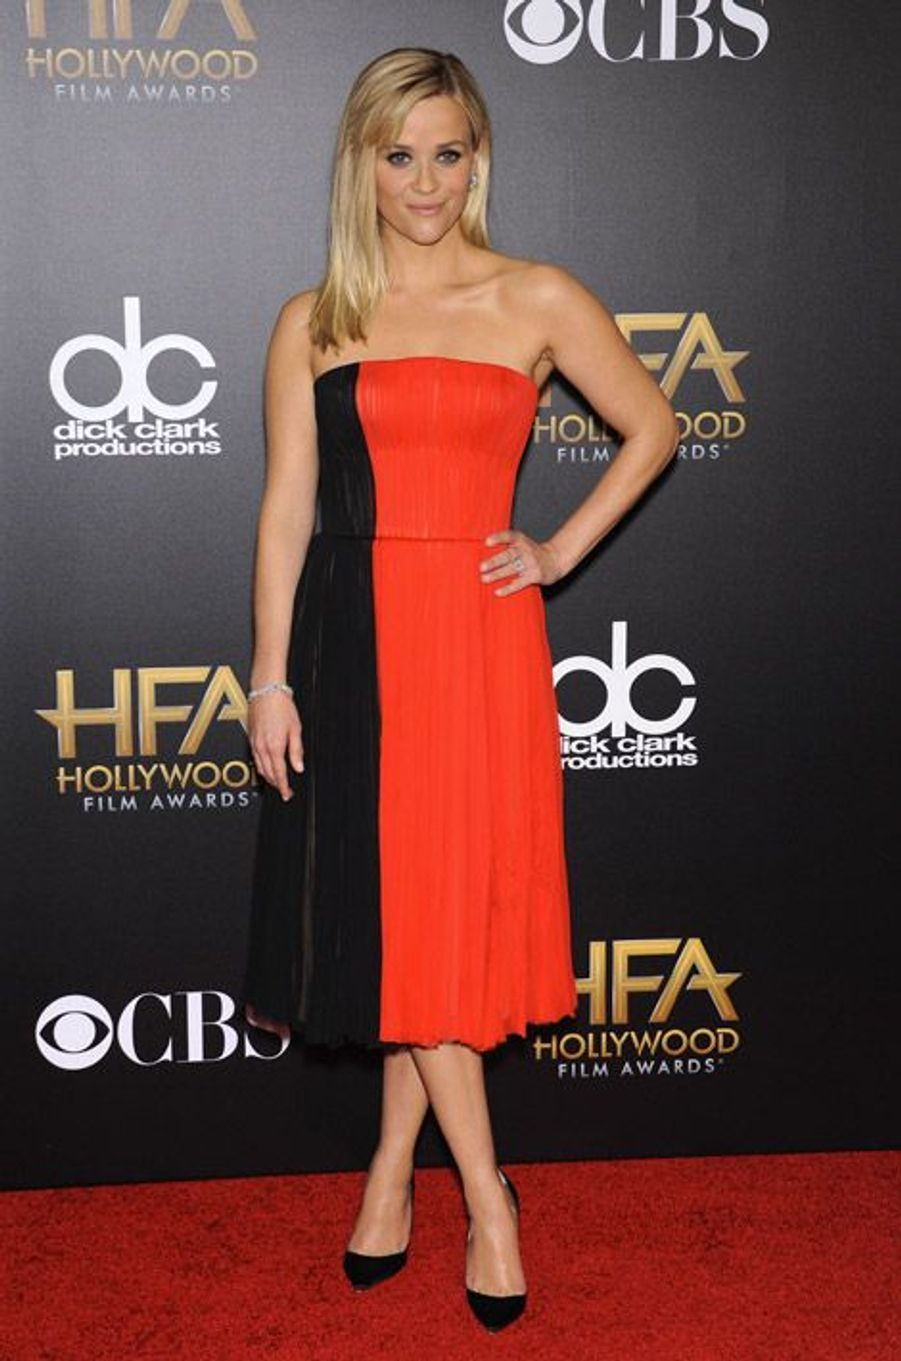 L'actrice Reese Witherspoon lors de la soirée des Hollywood Film Awards à Los Angeles, le 14 novembre 2014